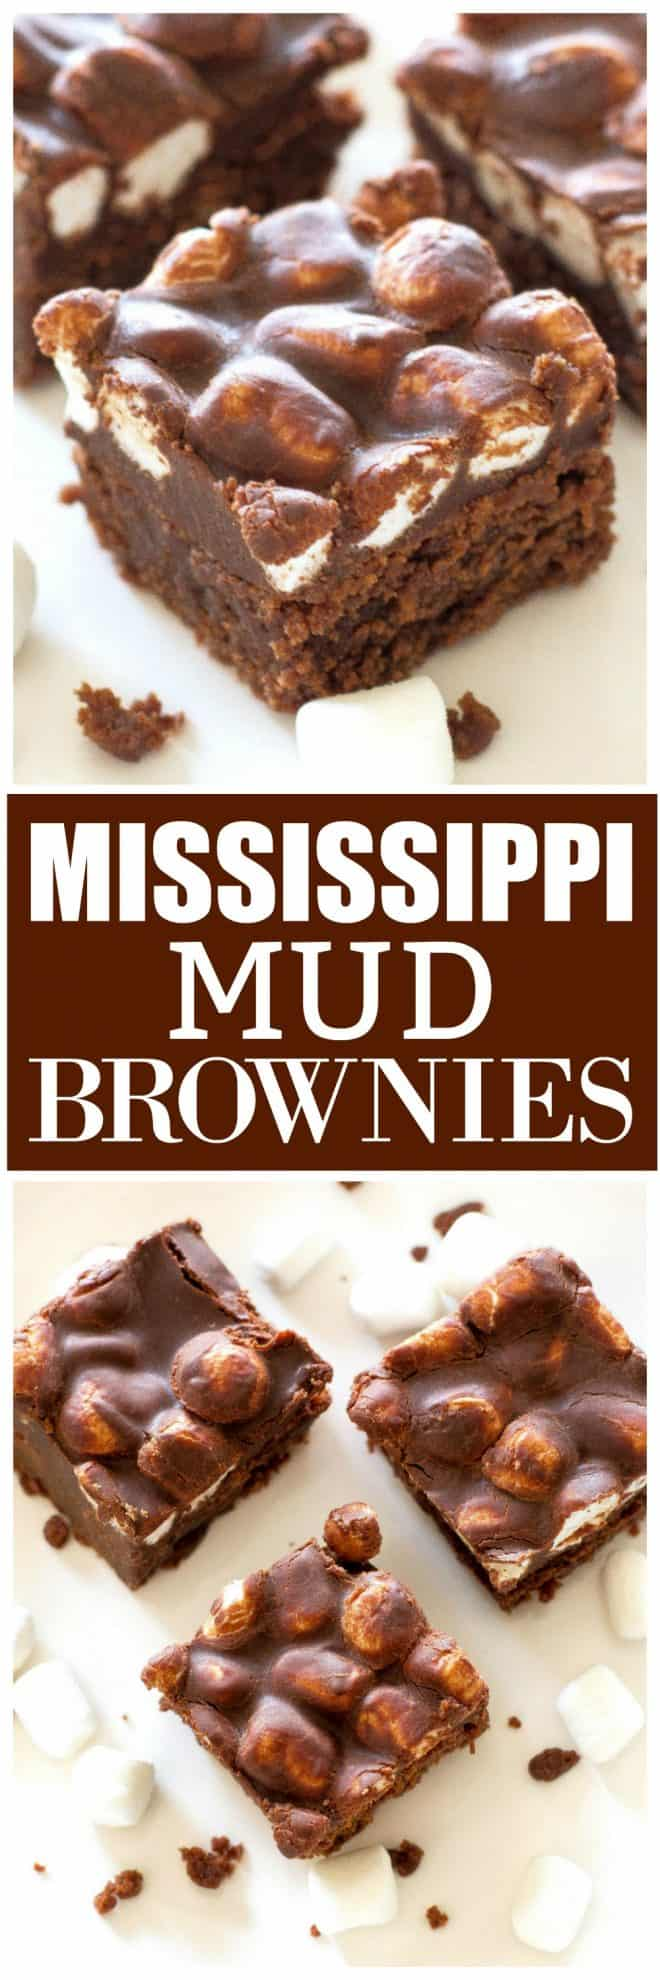 There are lots of recipes for Mississippi Mud Brownies out there but this one is perfection. Moist brownies topped with marshmallows and a rich chocolate ganache. #chocolate #mississippi #mud #brownies #dessert #recipe